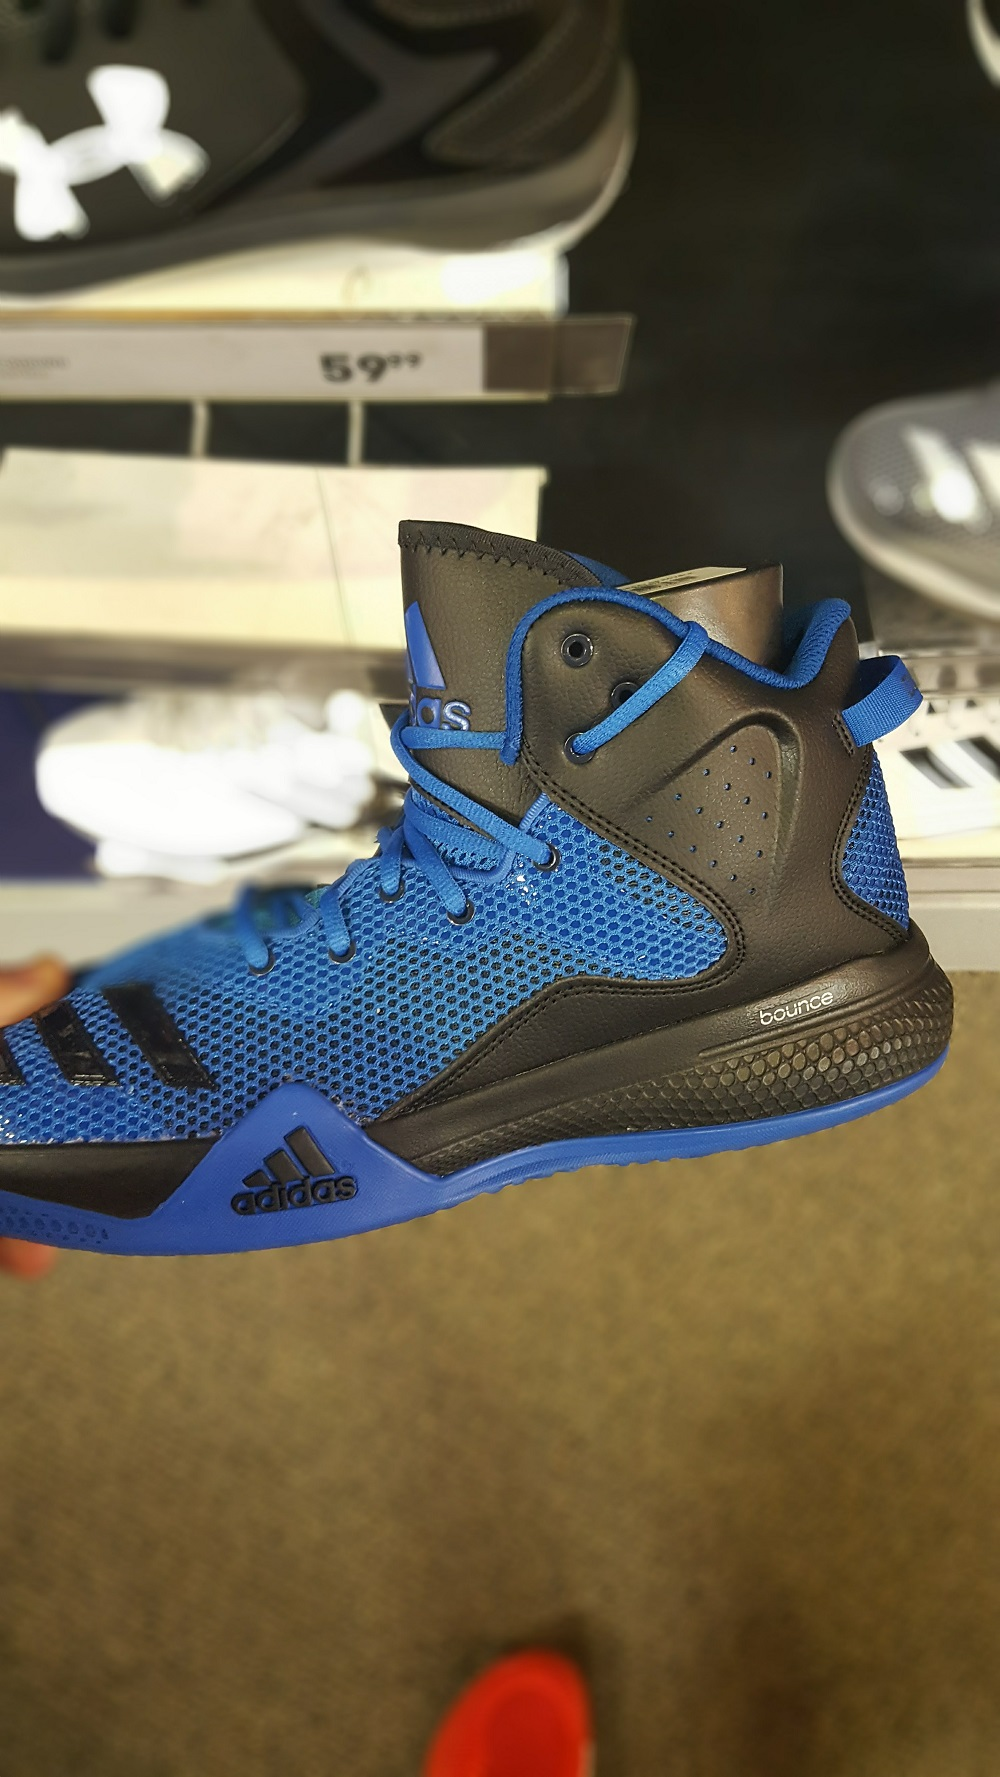 All About Basketball Shoes - Page 140 - Sports - Manilatonight.com ... c75d14ab7